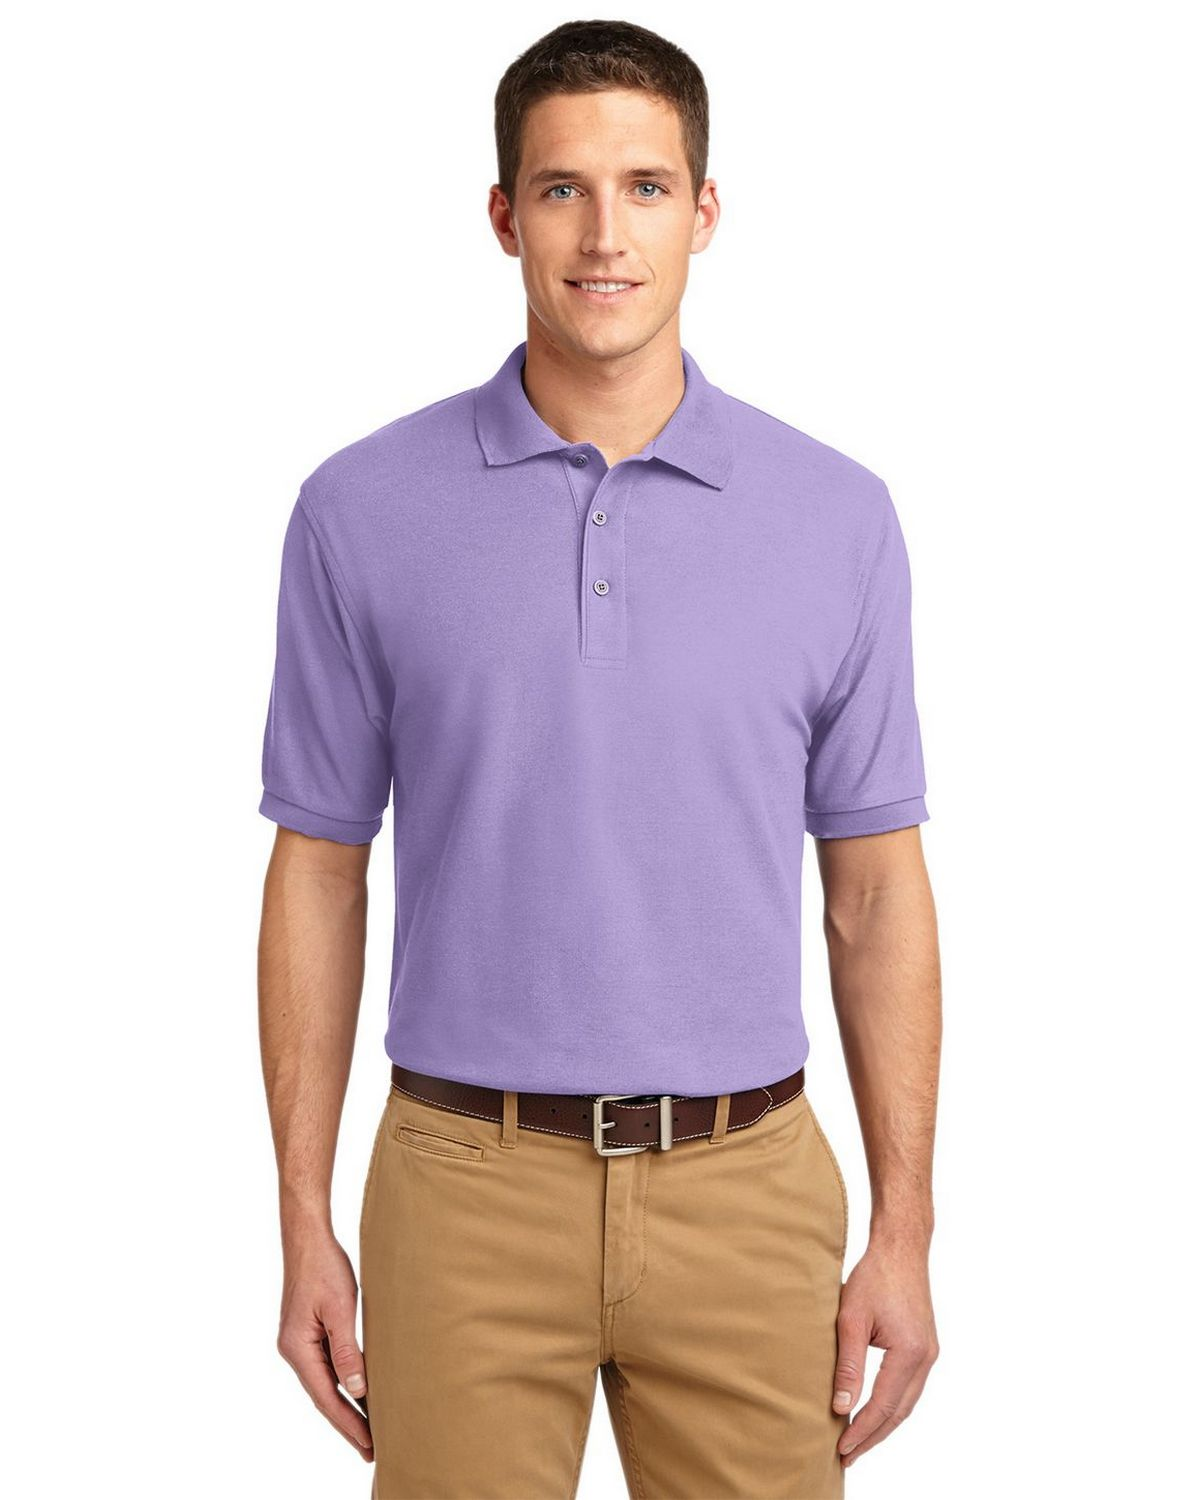 Port Authority K500 Men's Silk Touch Polo - Bright Lavender - XS #silk